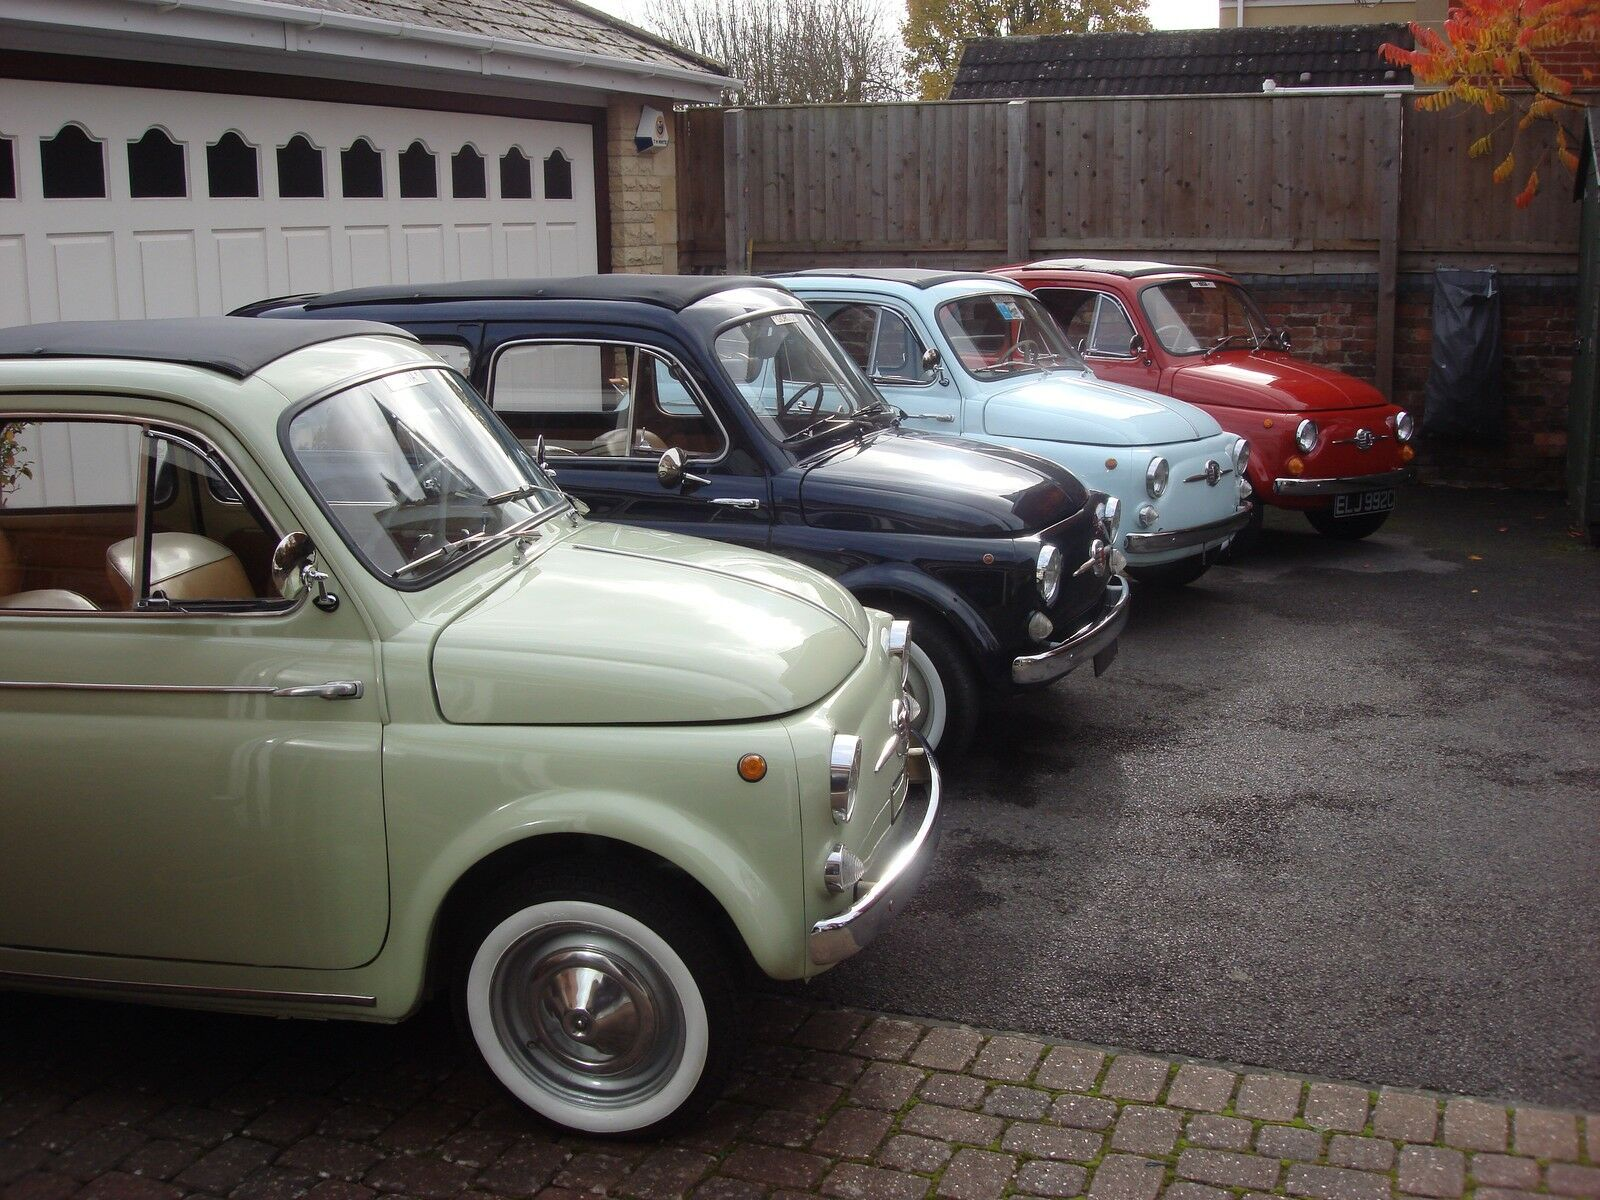 LOWBOURNE CLASSIC VEHICLES